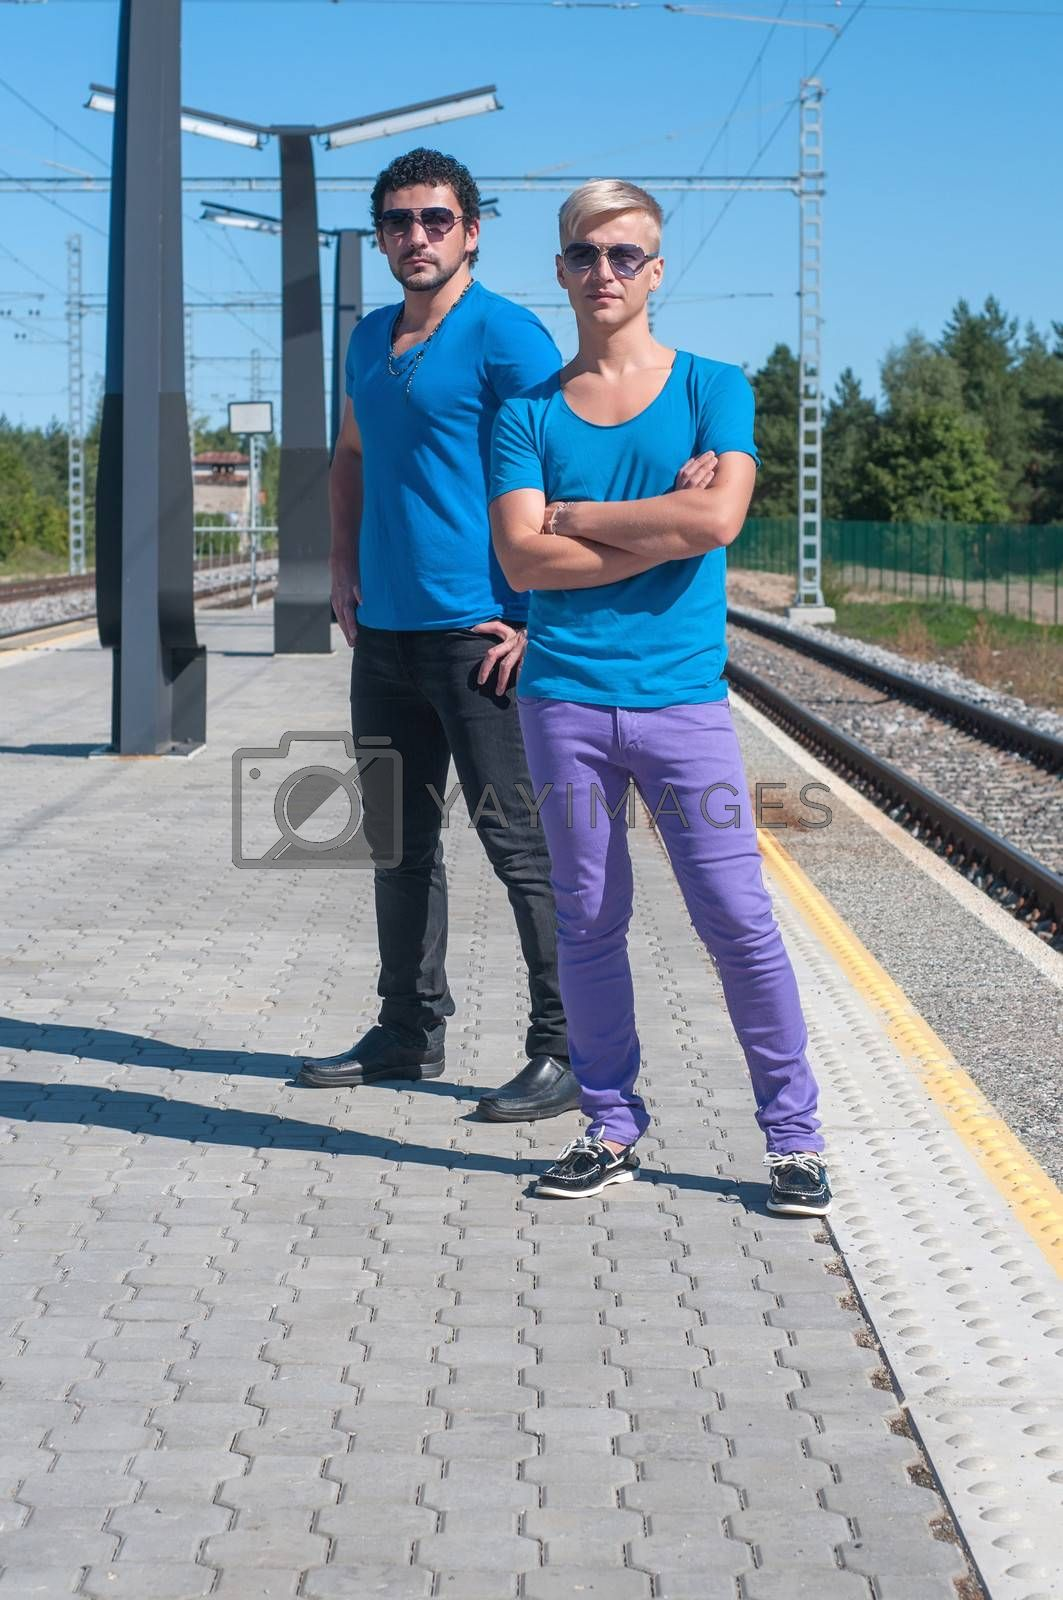 Shot of two young men standing on platform